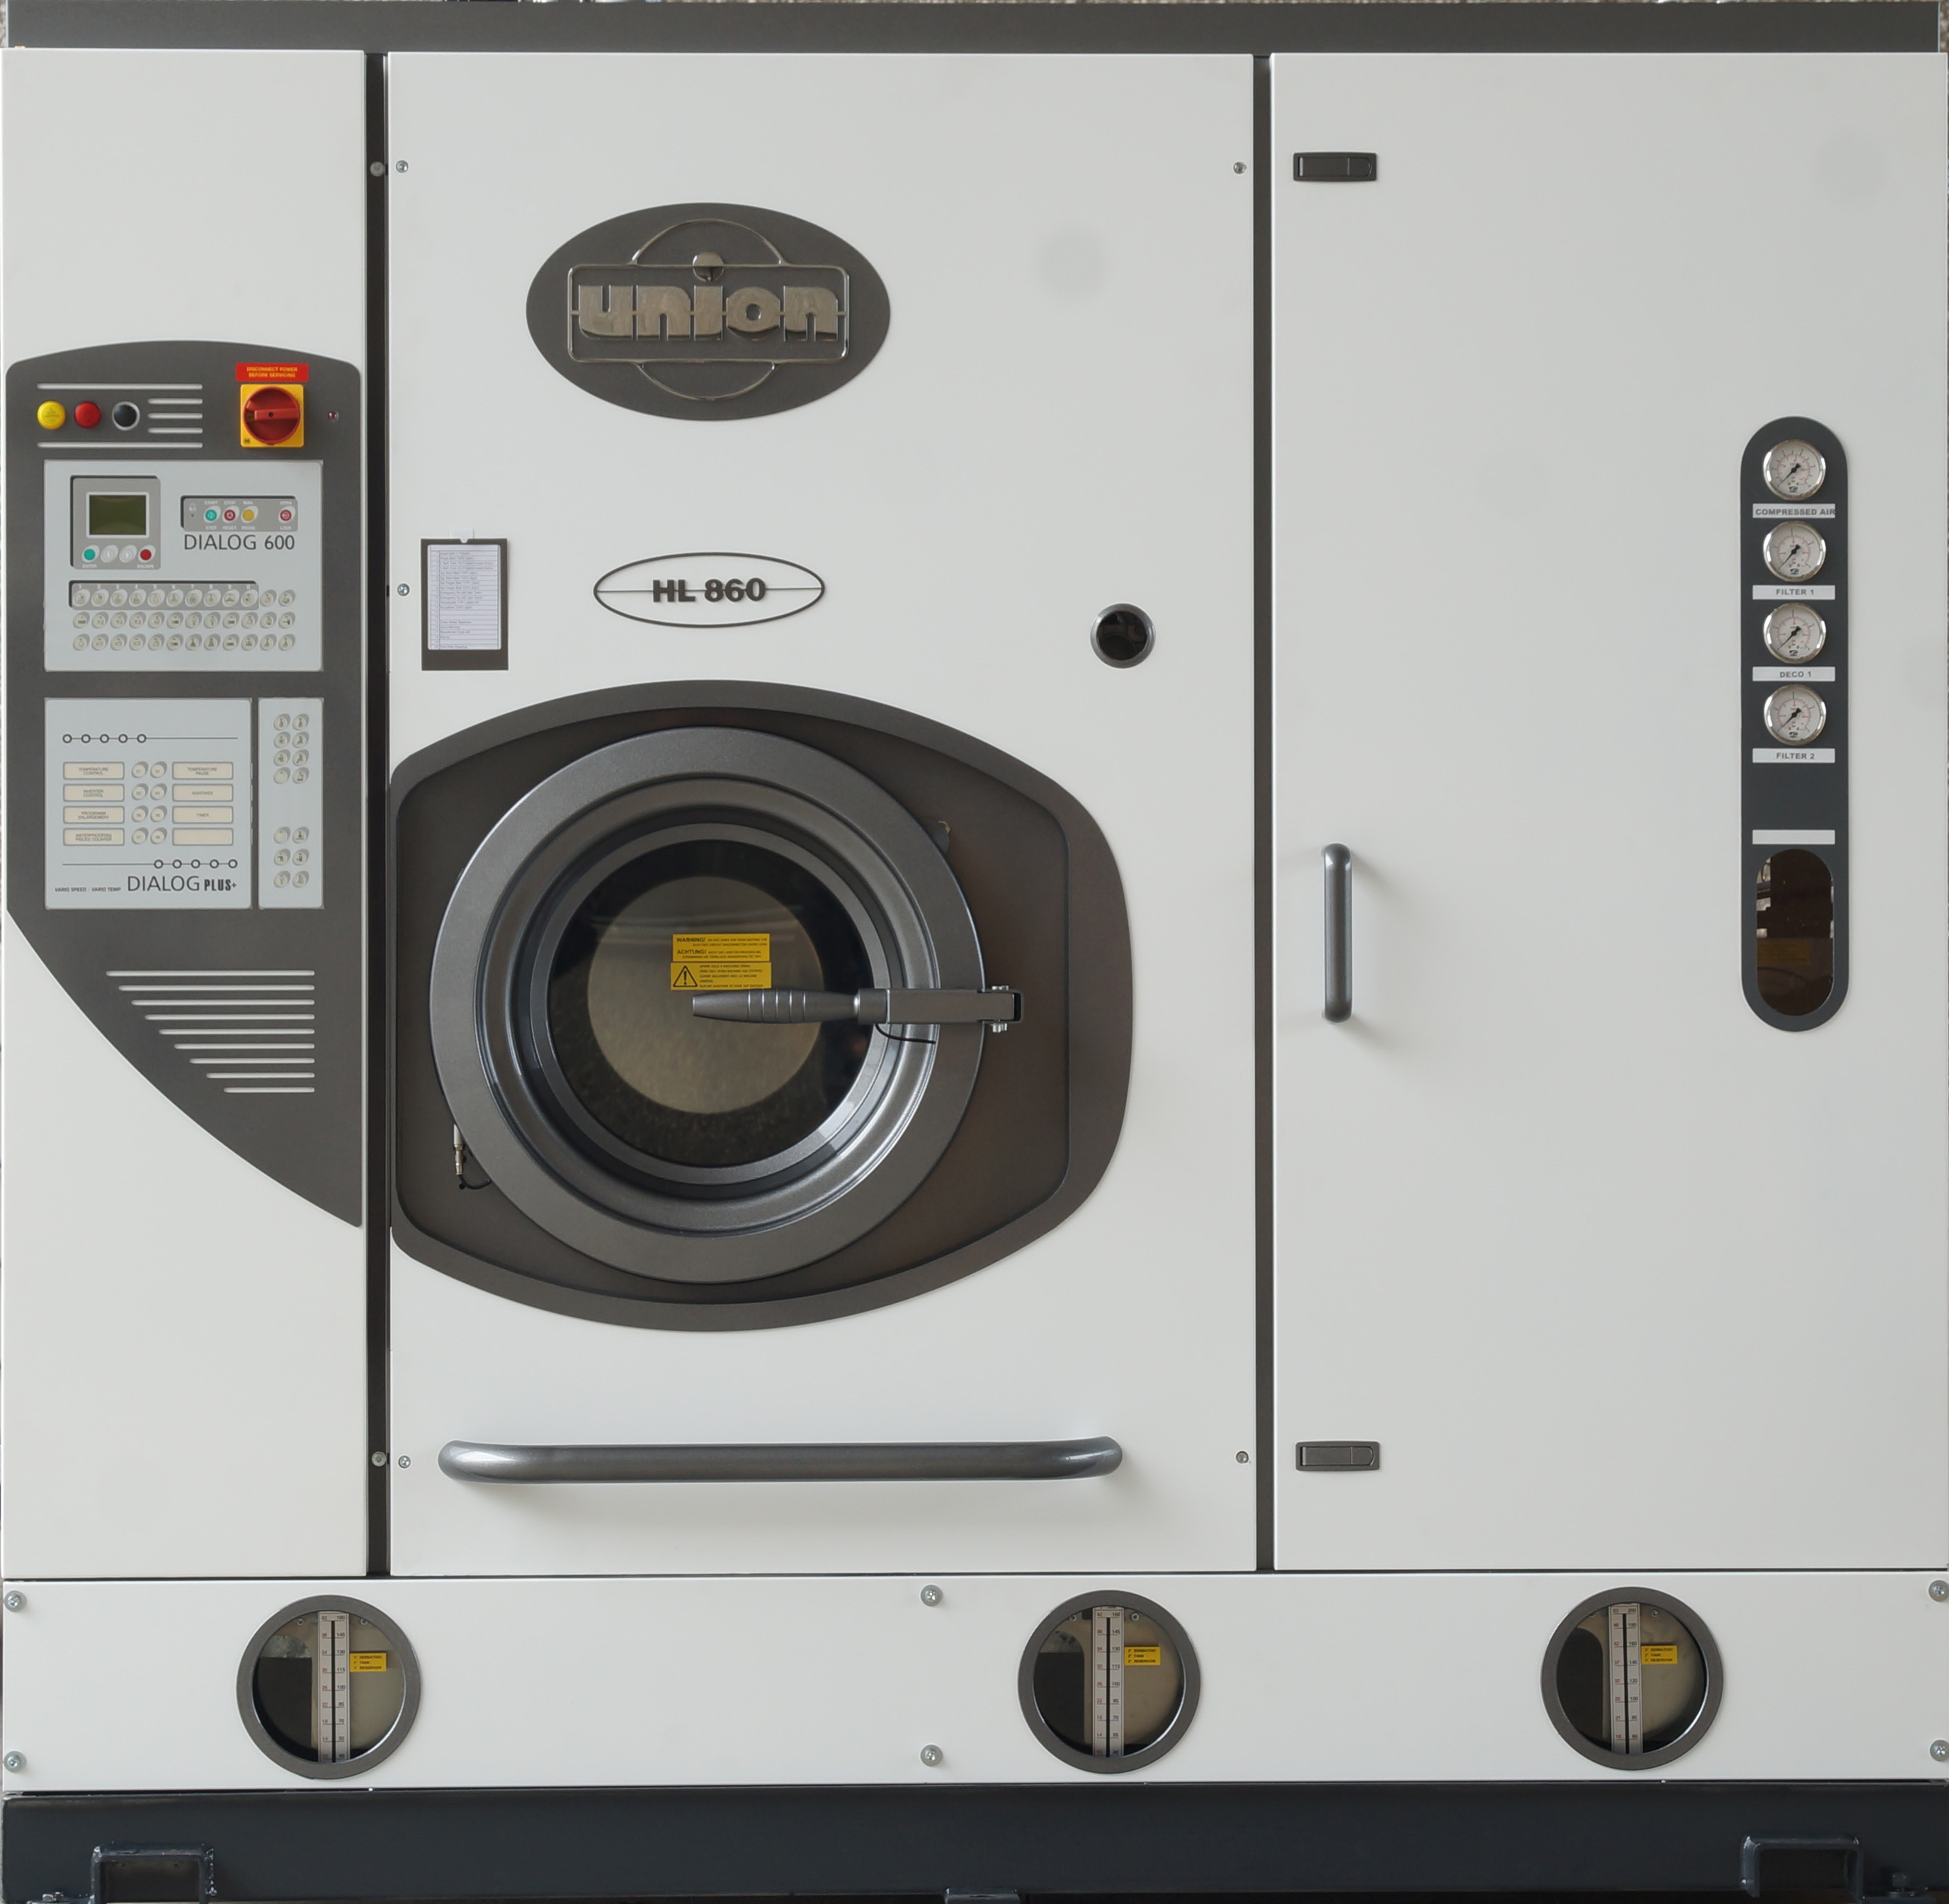 union cleaning machine